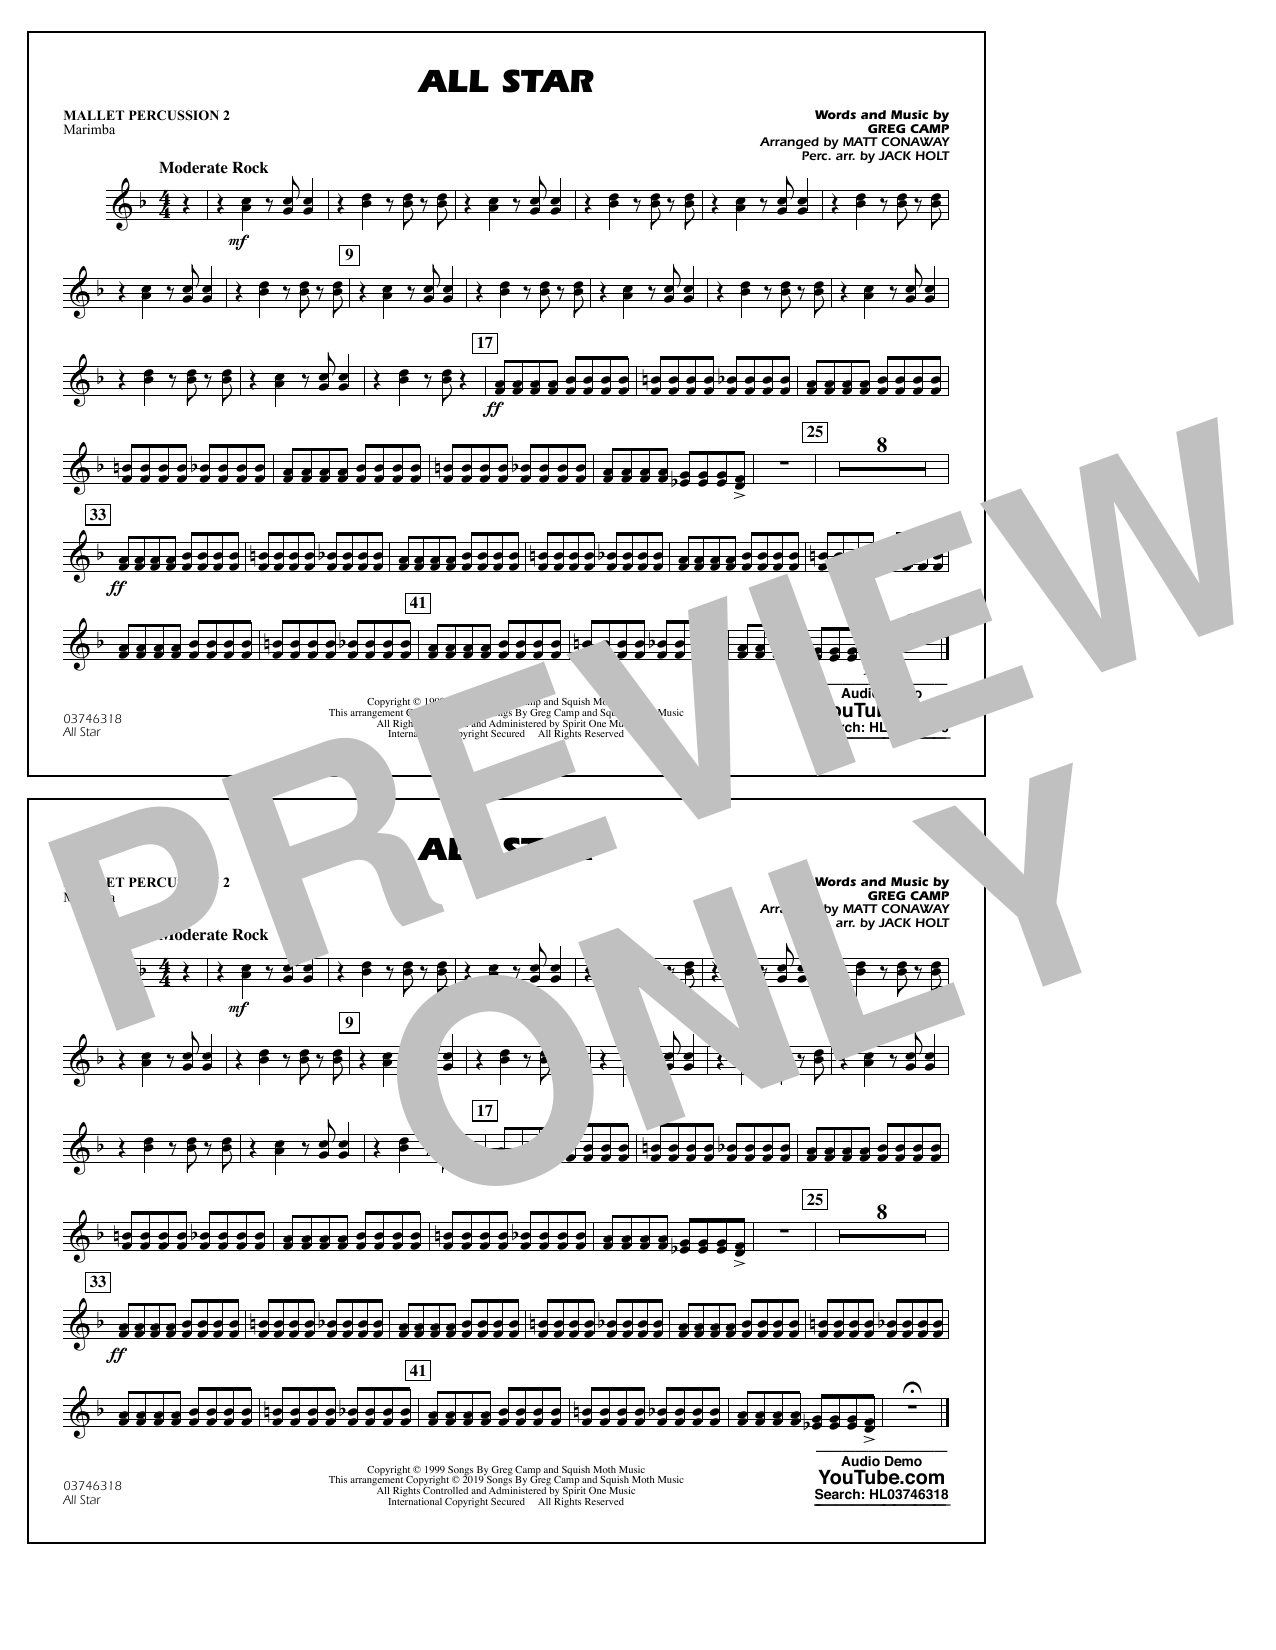 All Star (arr. Matt Conaway) - Mallet Percussion 2 (Marching Band)